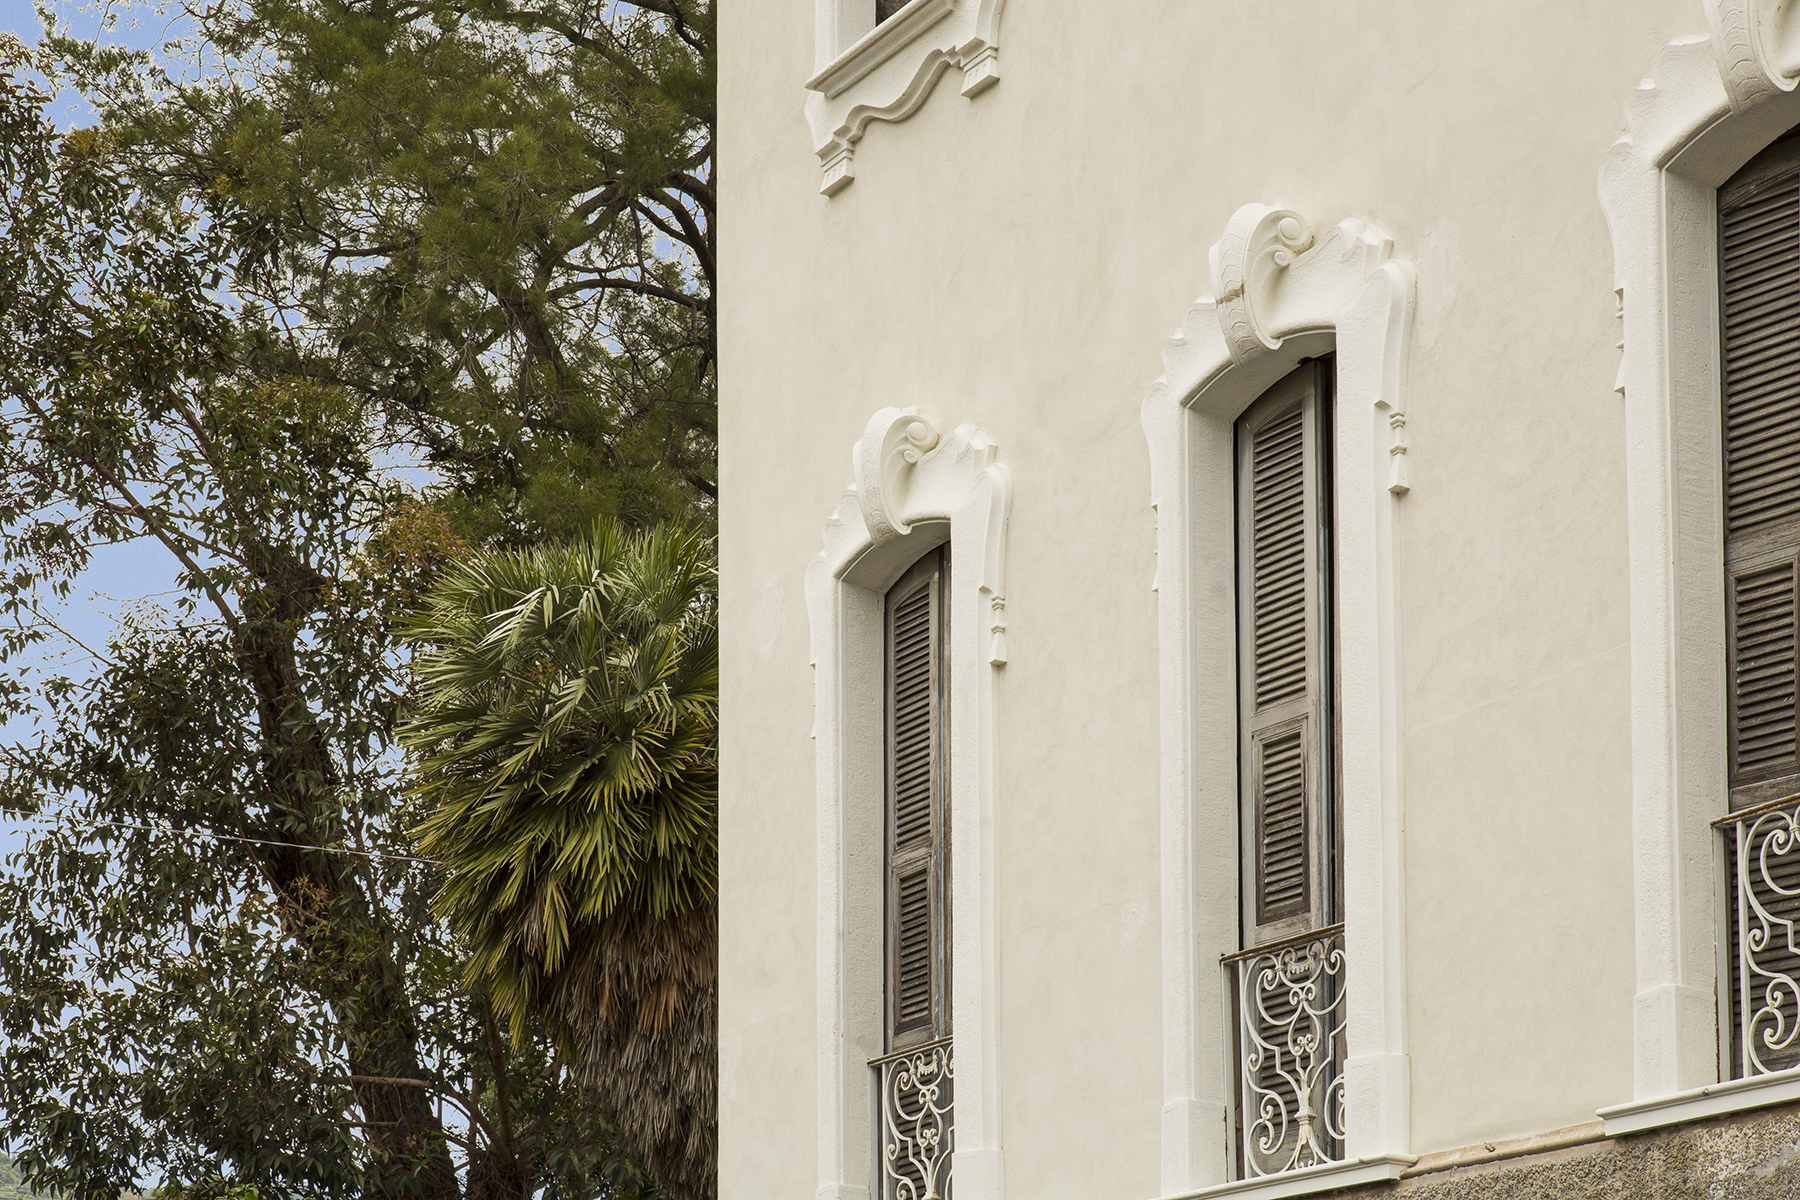 Single Family Home for Sale at Liberty style Villa in Sanremo Corso degli Inglesi Sanremo, Imperia 18038 Italy